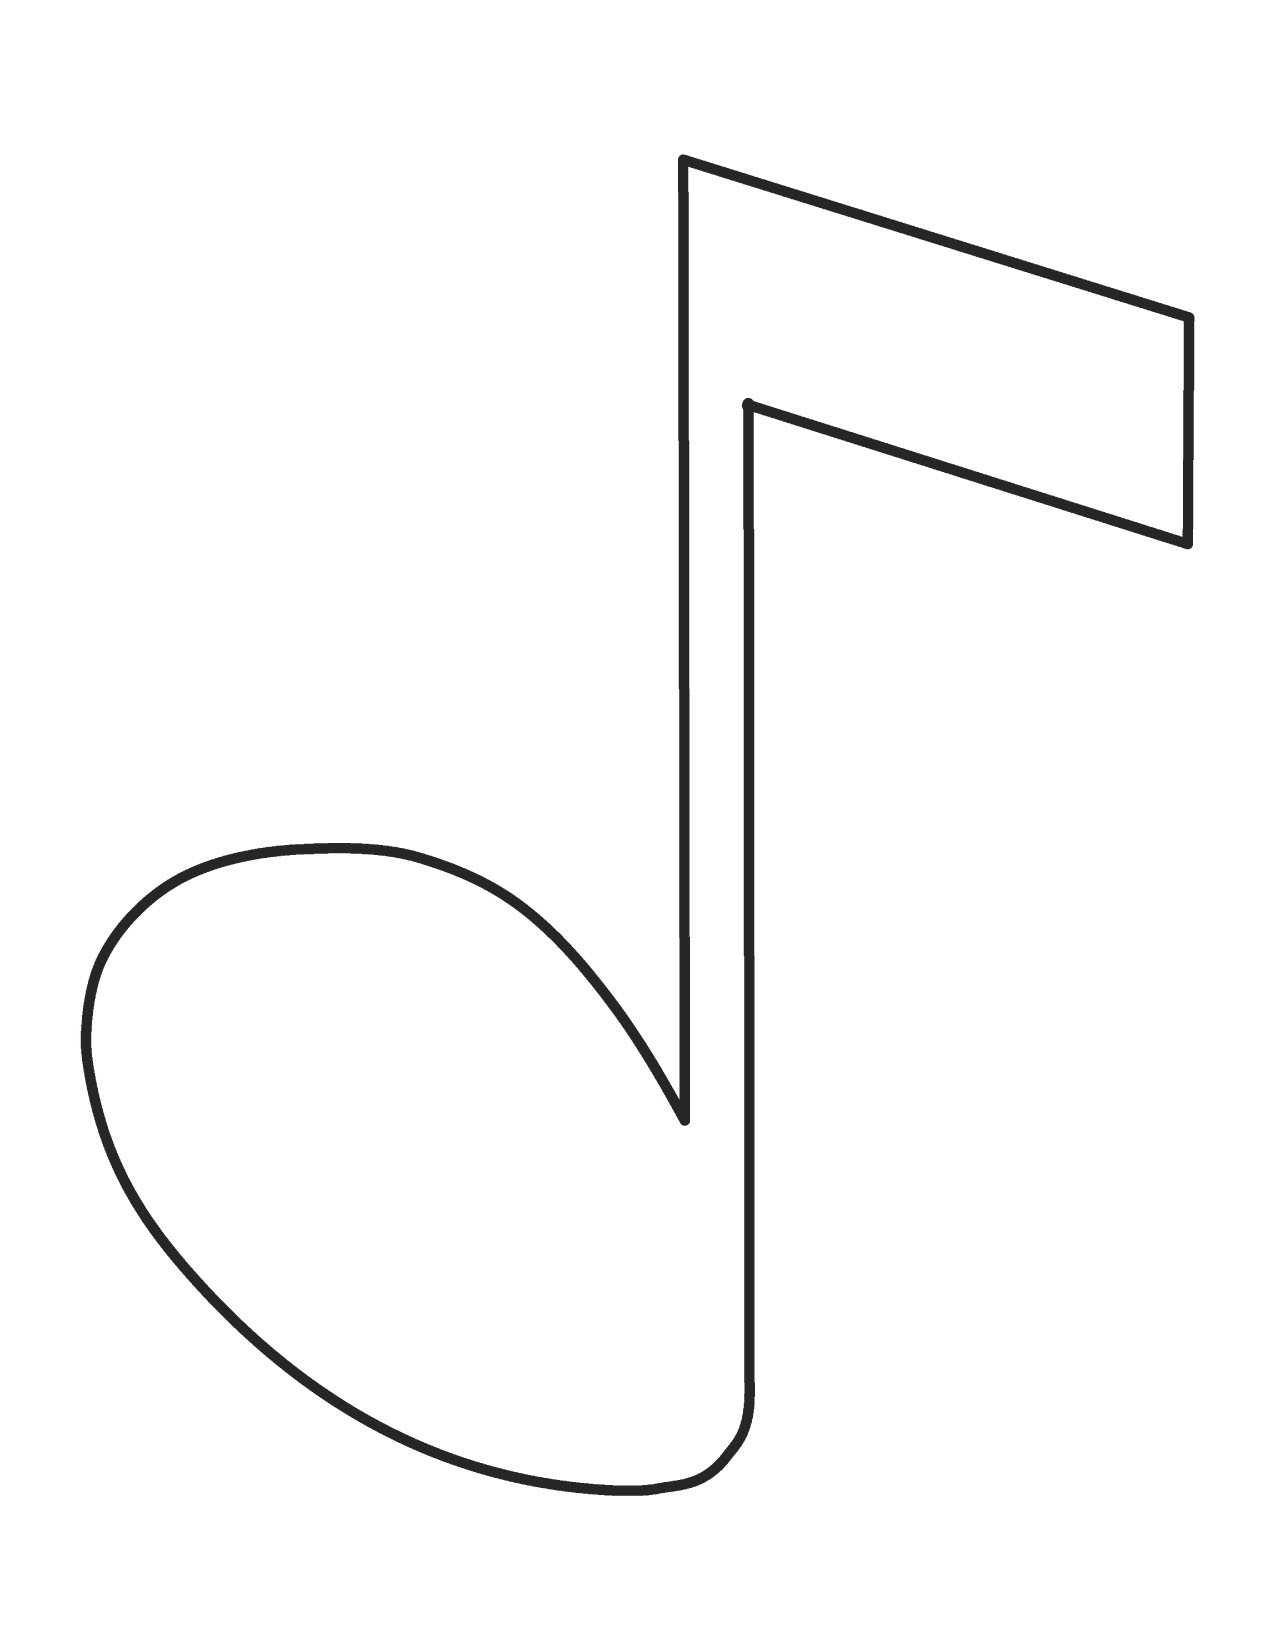 Free printable musical notes clipart graphic royalty free stock Free Music Note Images Free, Download Free Clip Art, Free Clip Art ... graphic royalty free stock